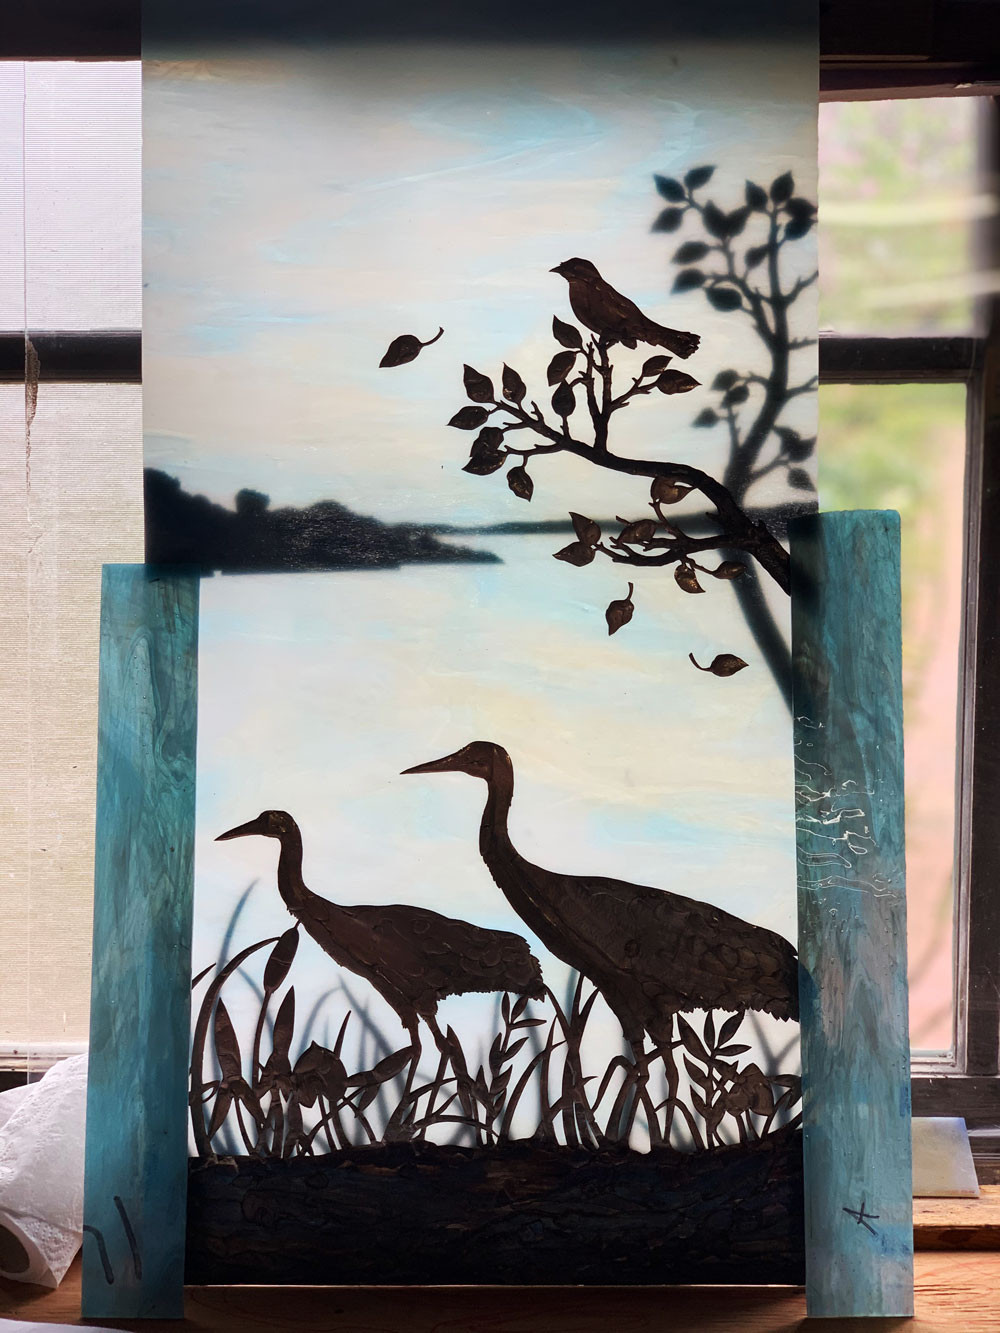 stained glass piece of three birds by the water. ©Anne Ryan Miller